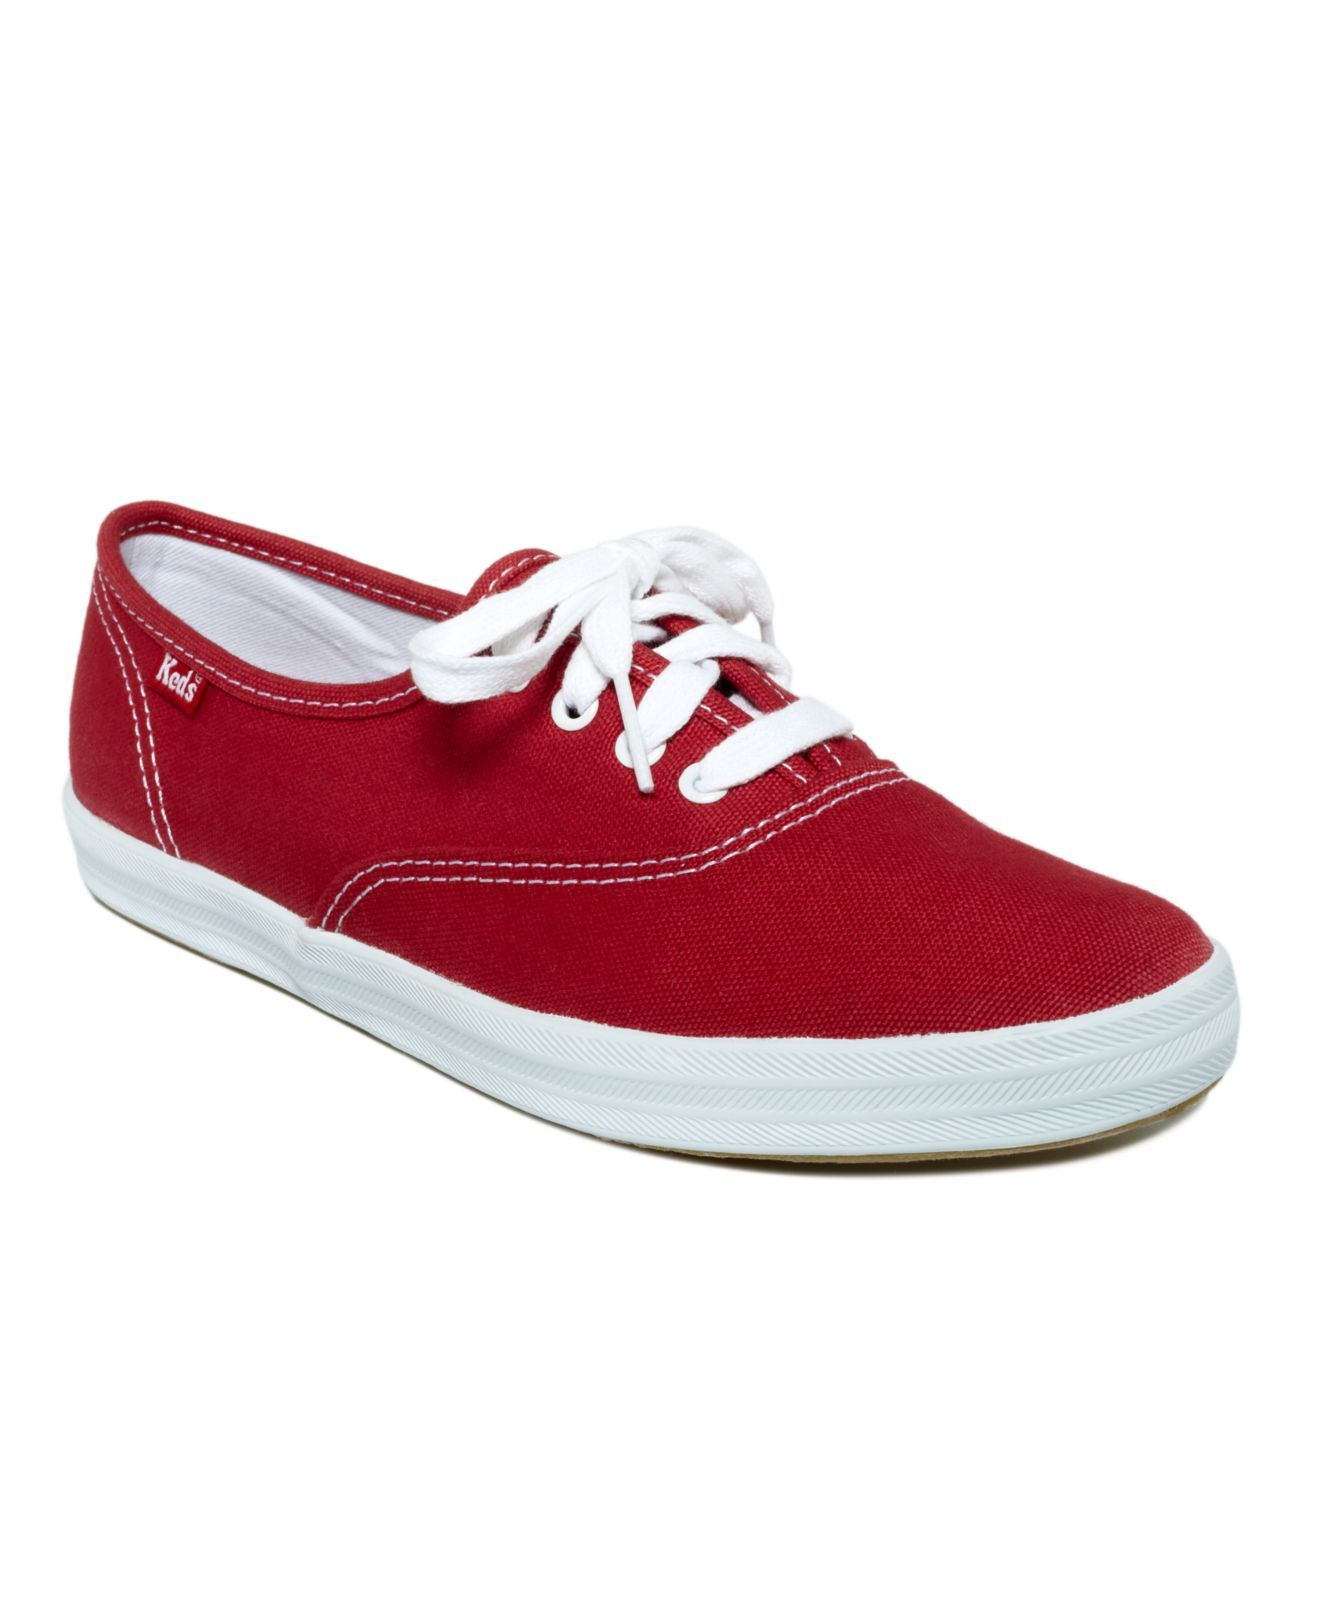 Athletic Shoes \u0026 Sneakers - Shoes